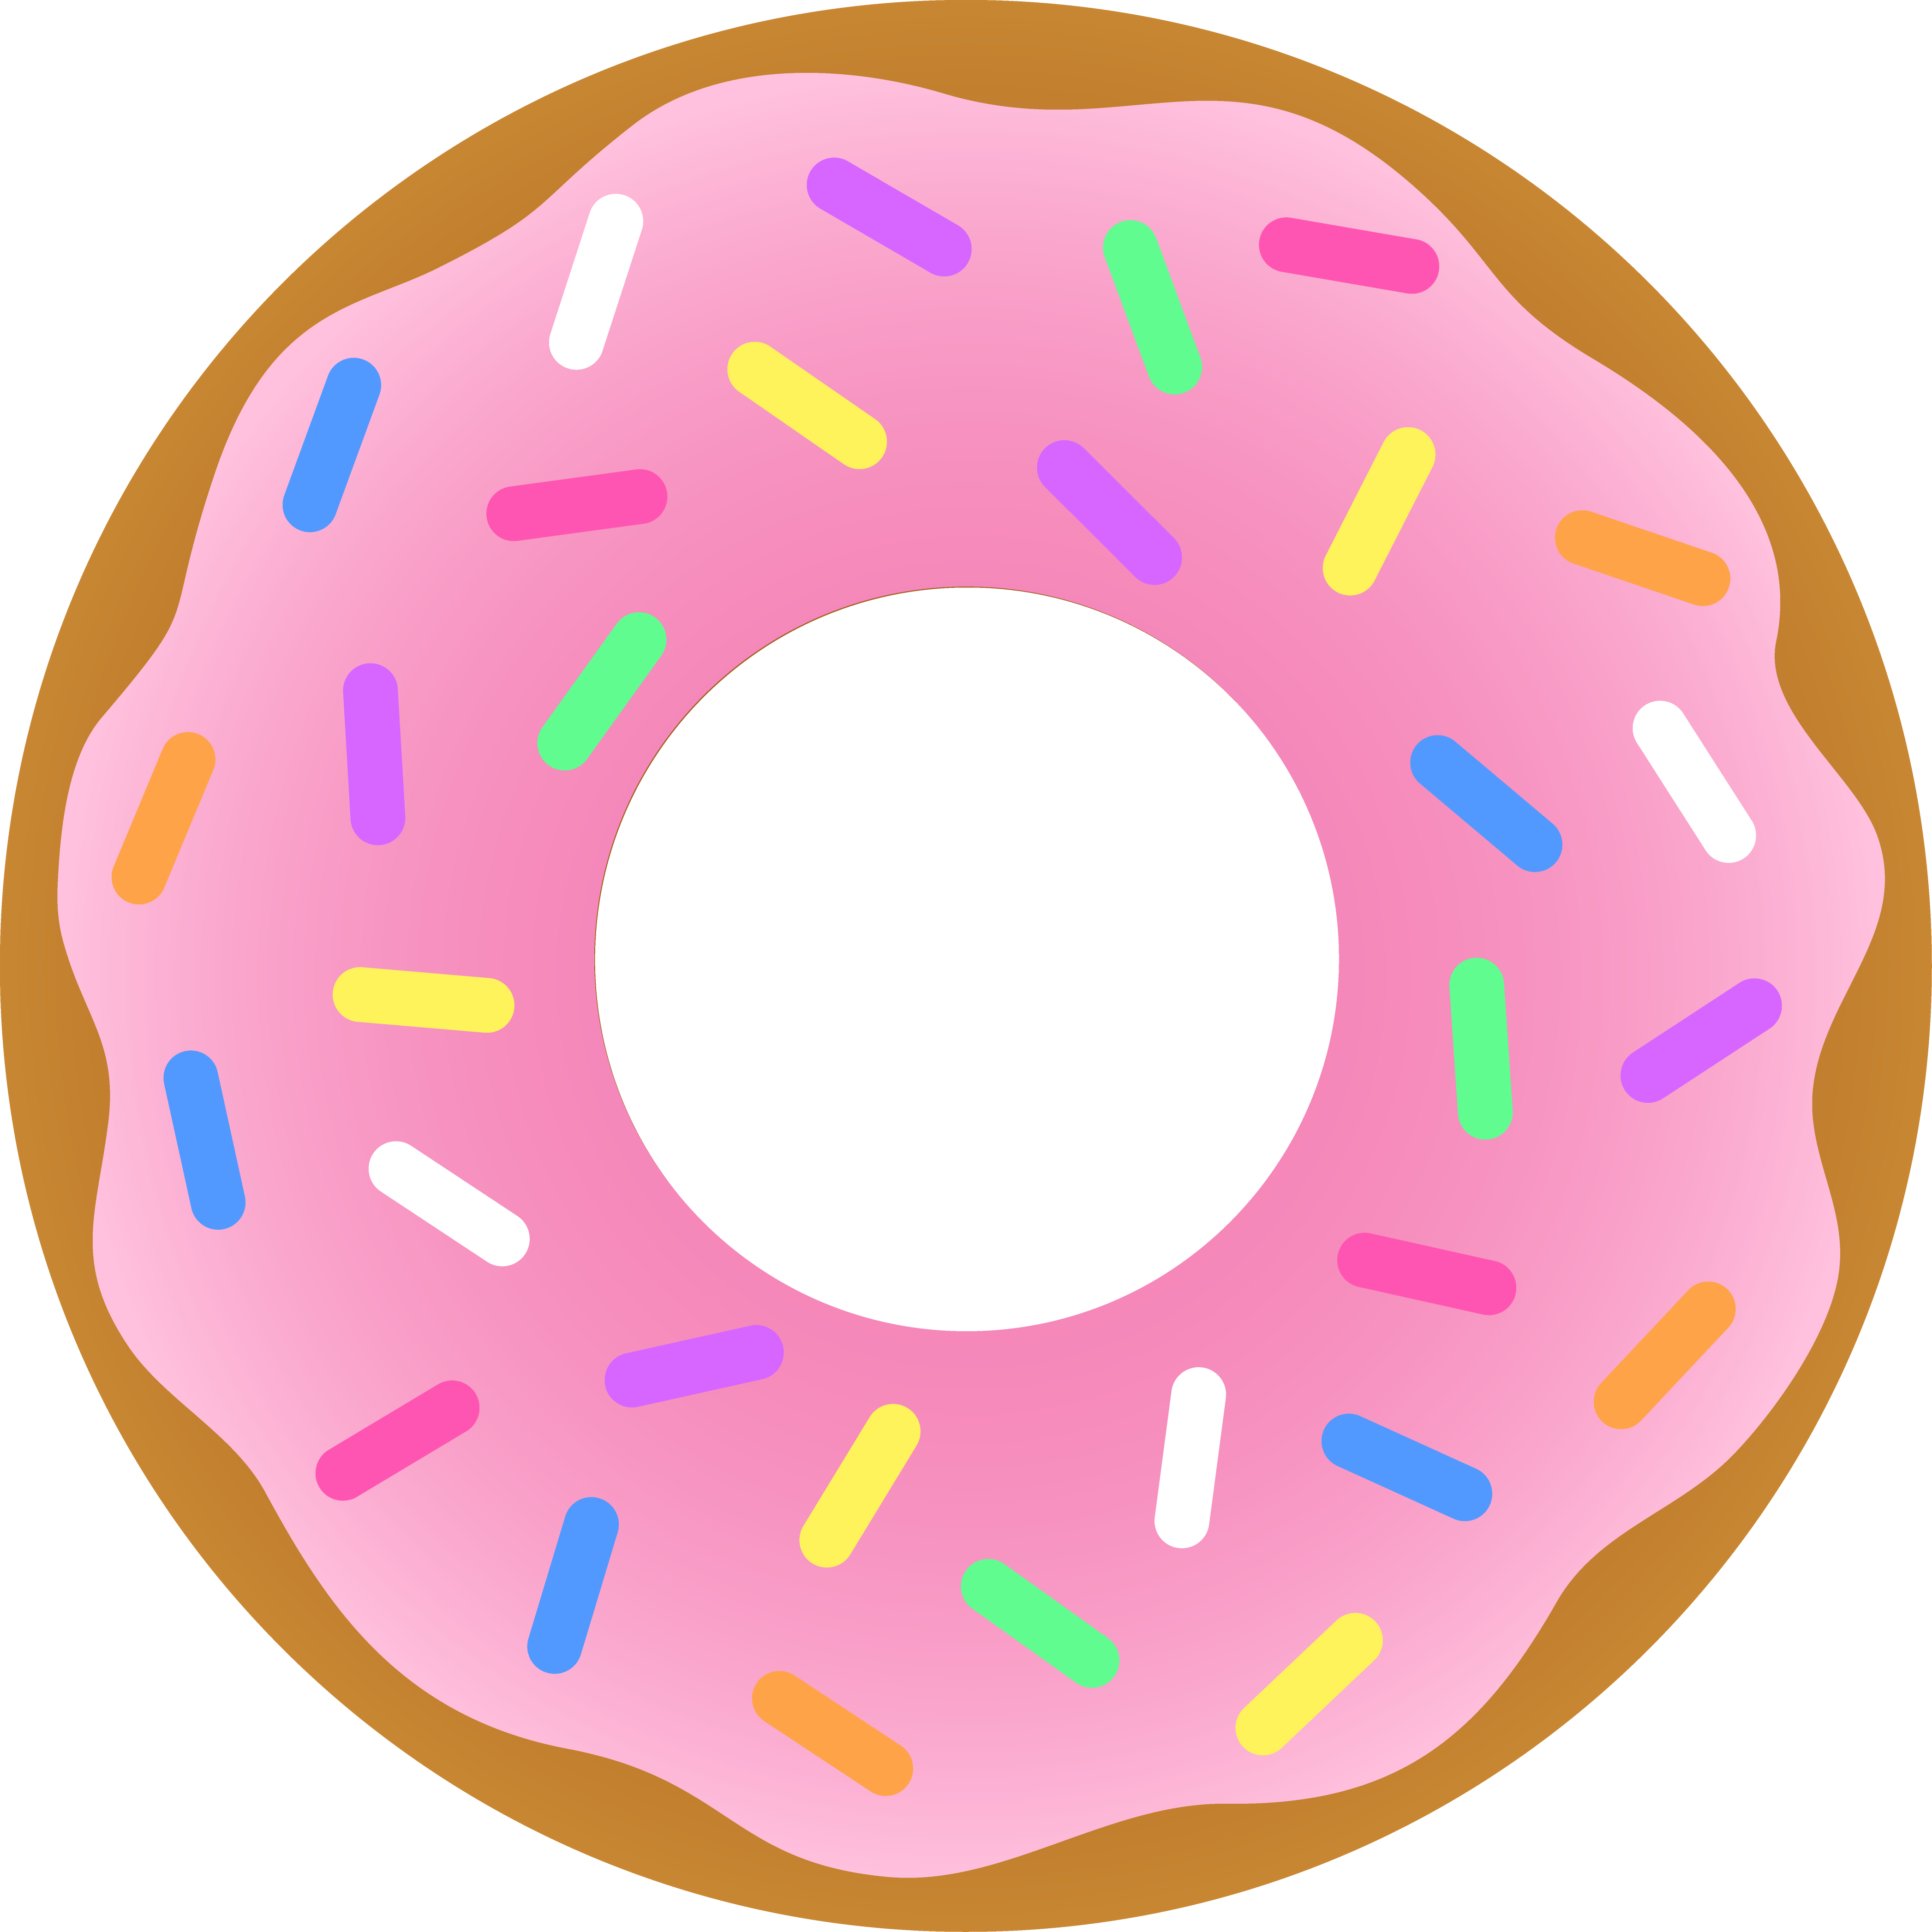 graphic free download Doughnut clipart. Free